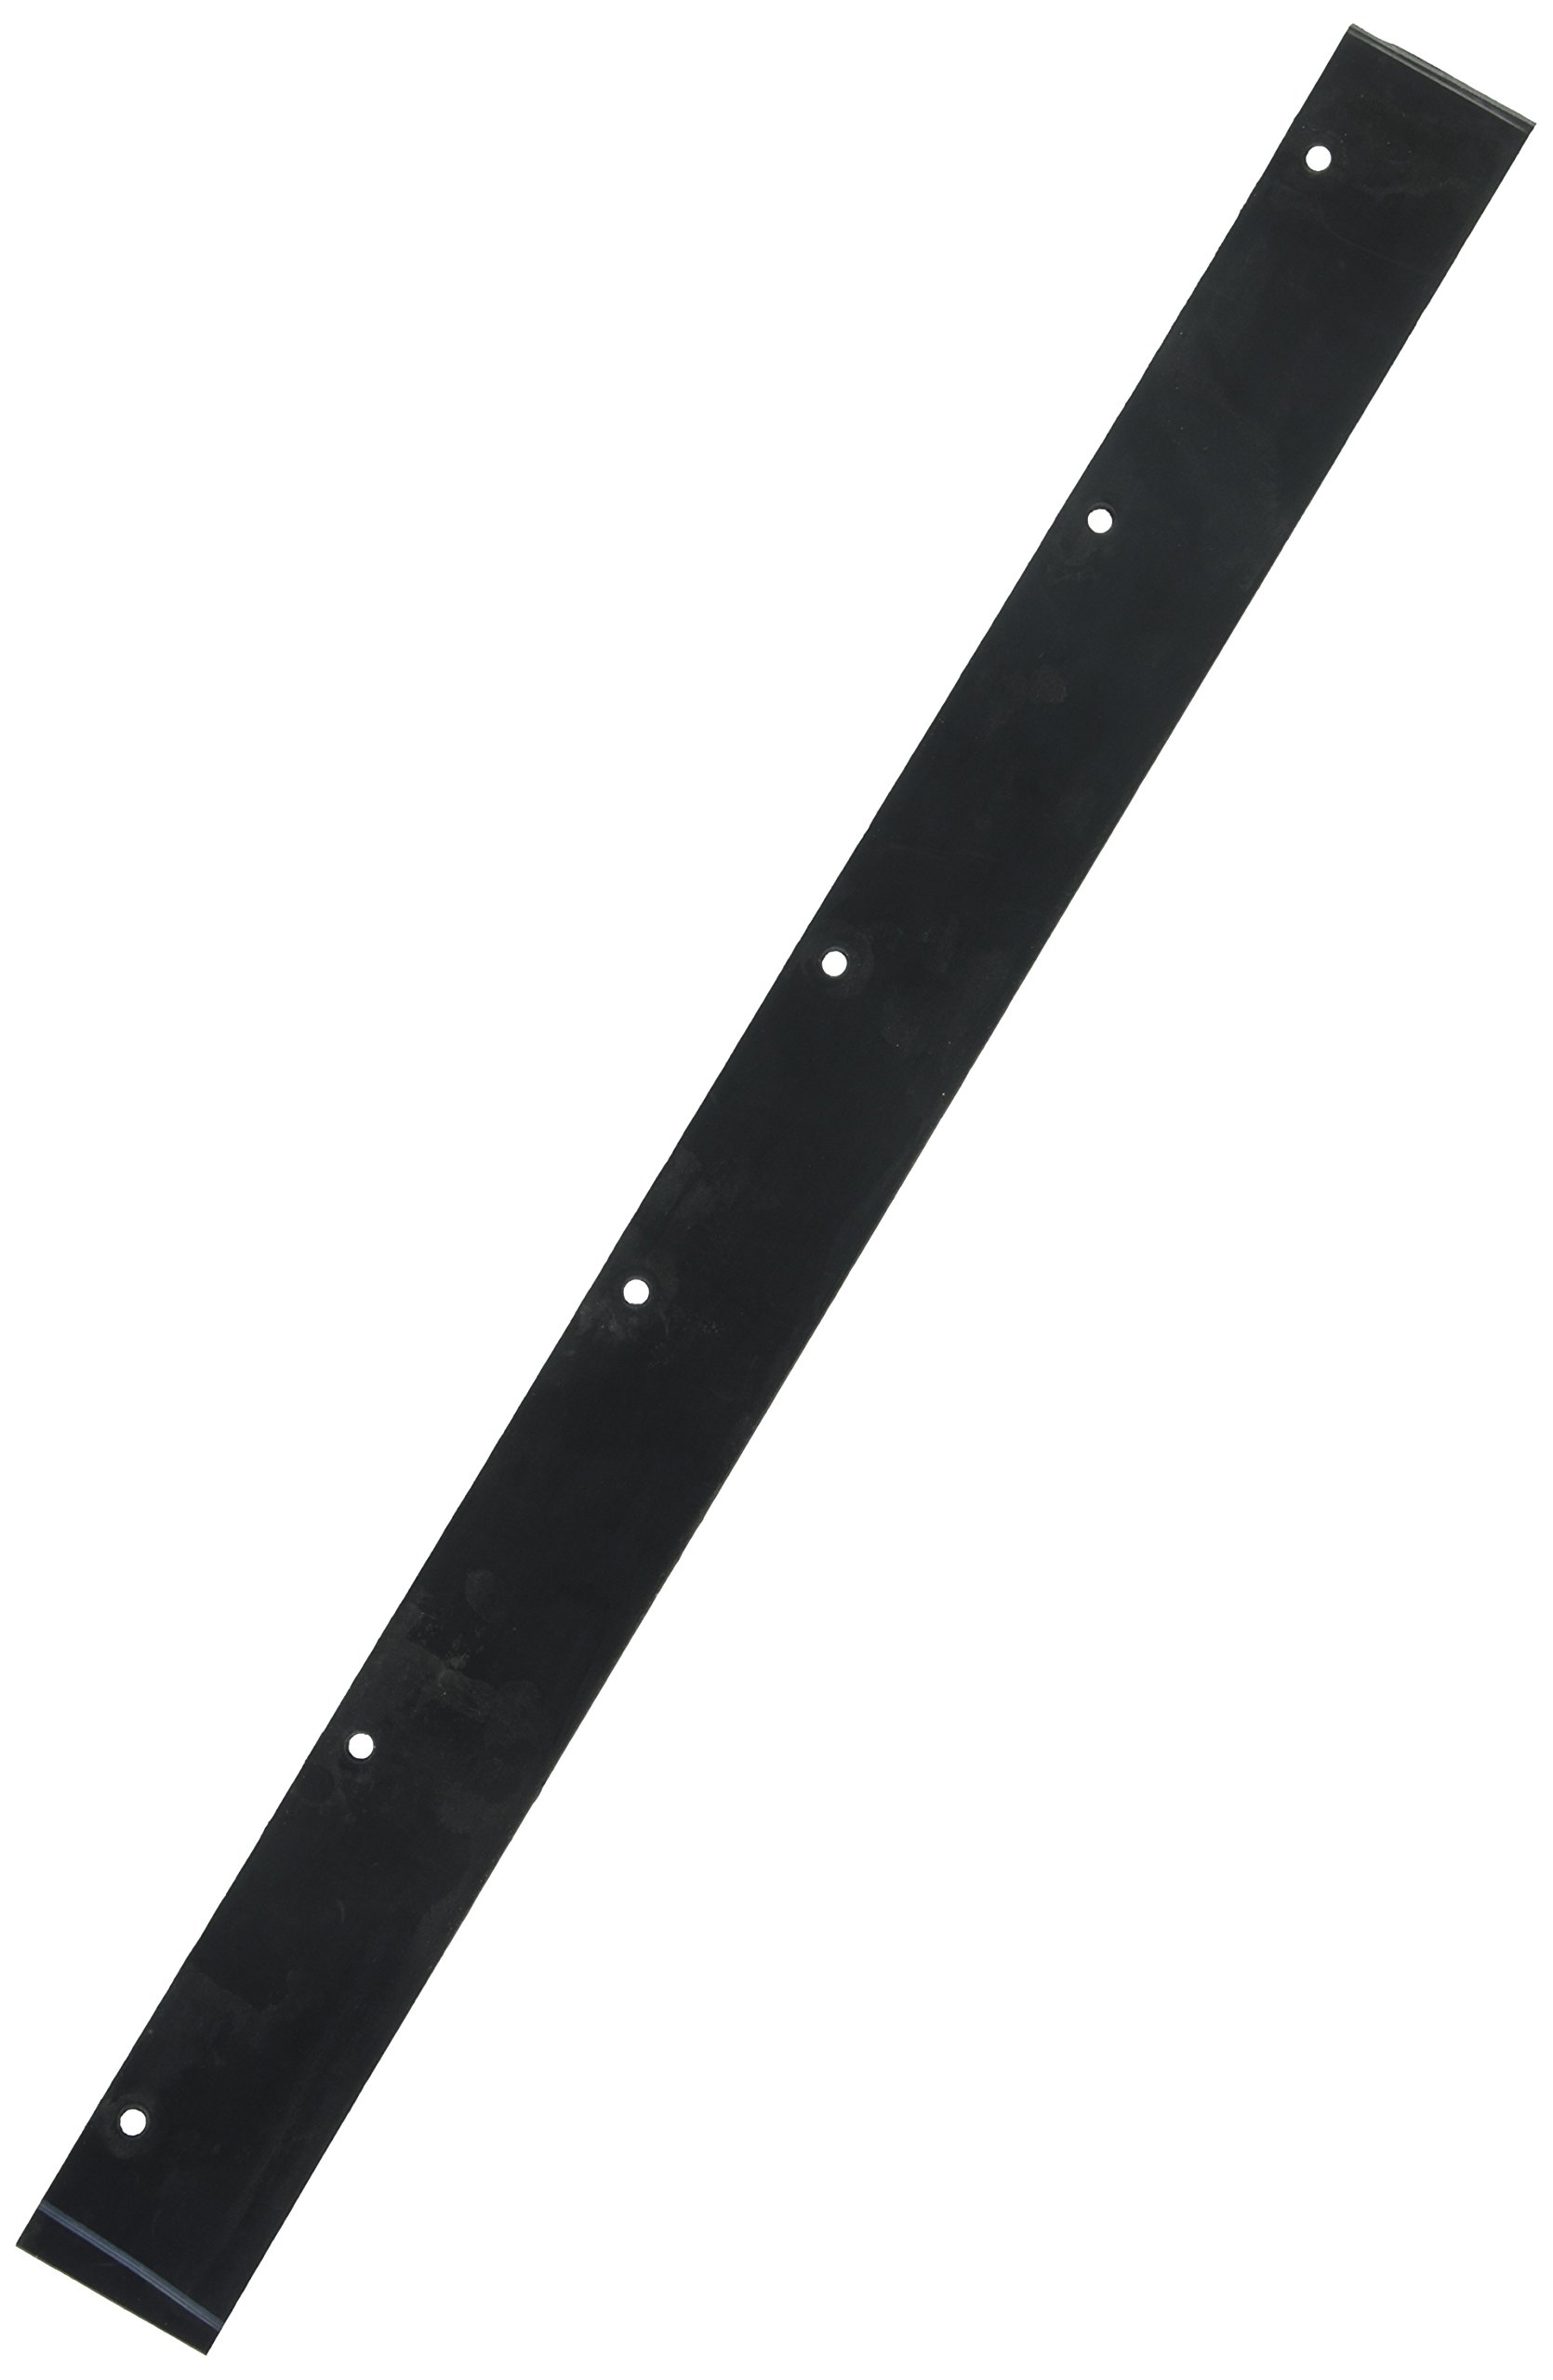 Floor Squeegee Replacement Blade 24'' Made in the USA